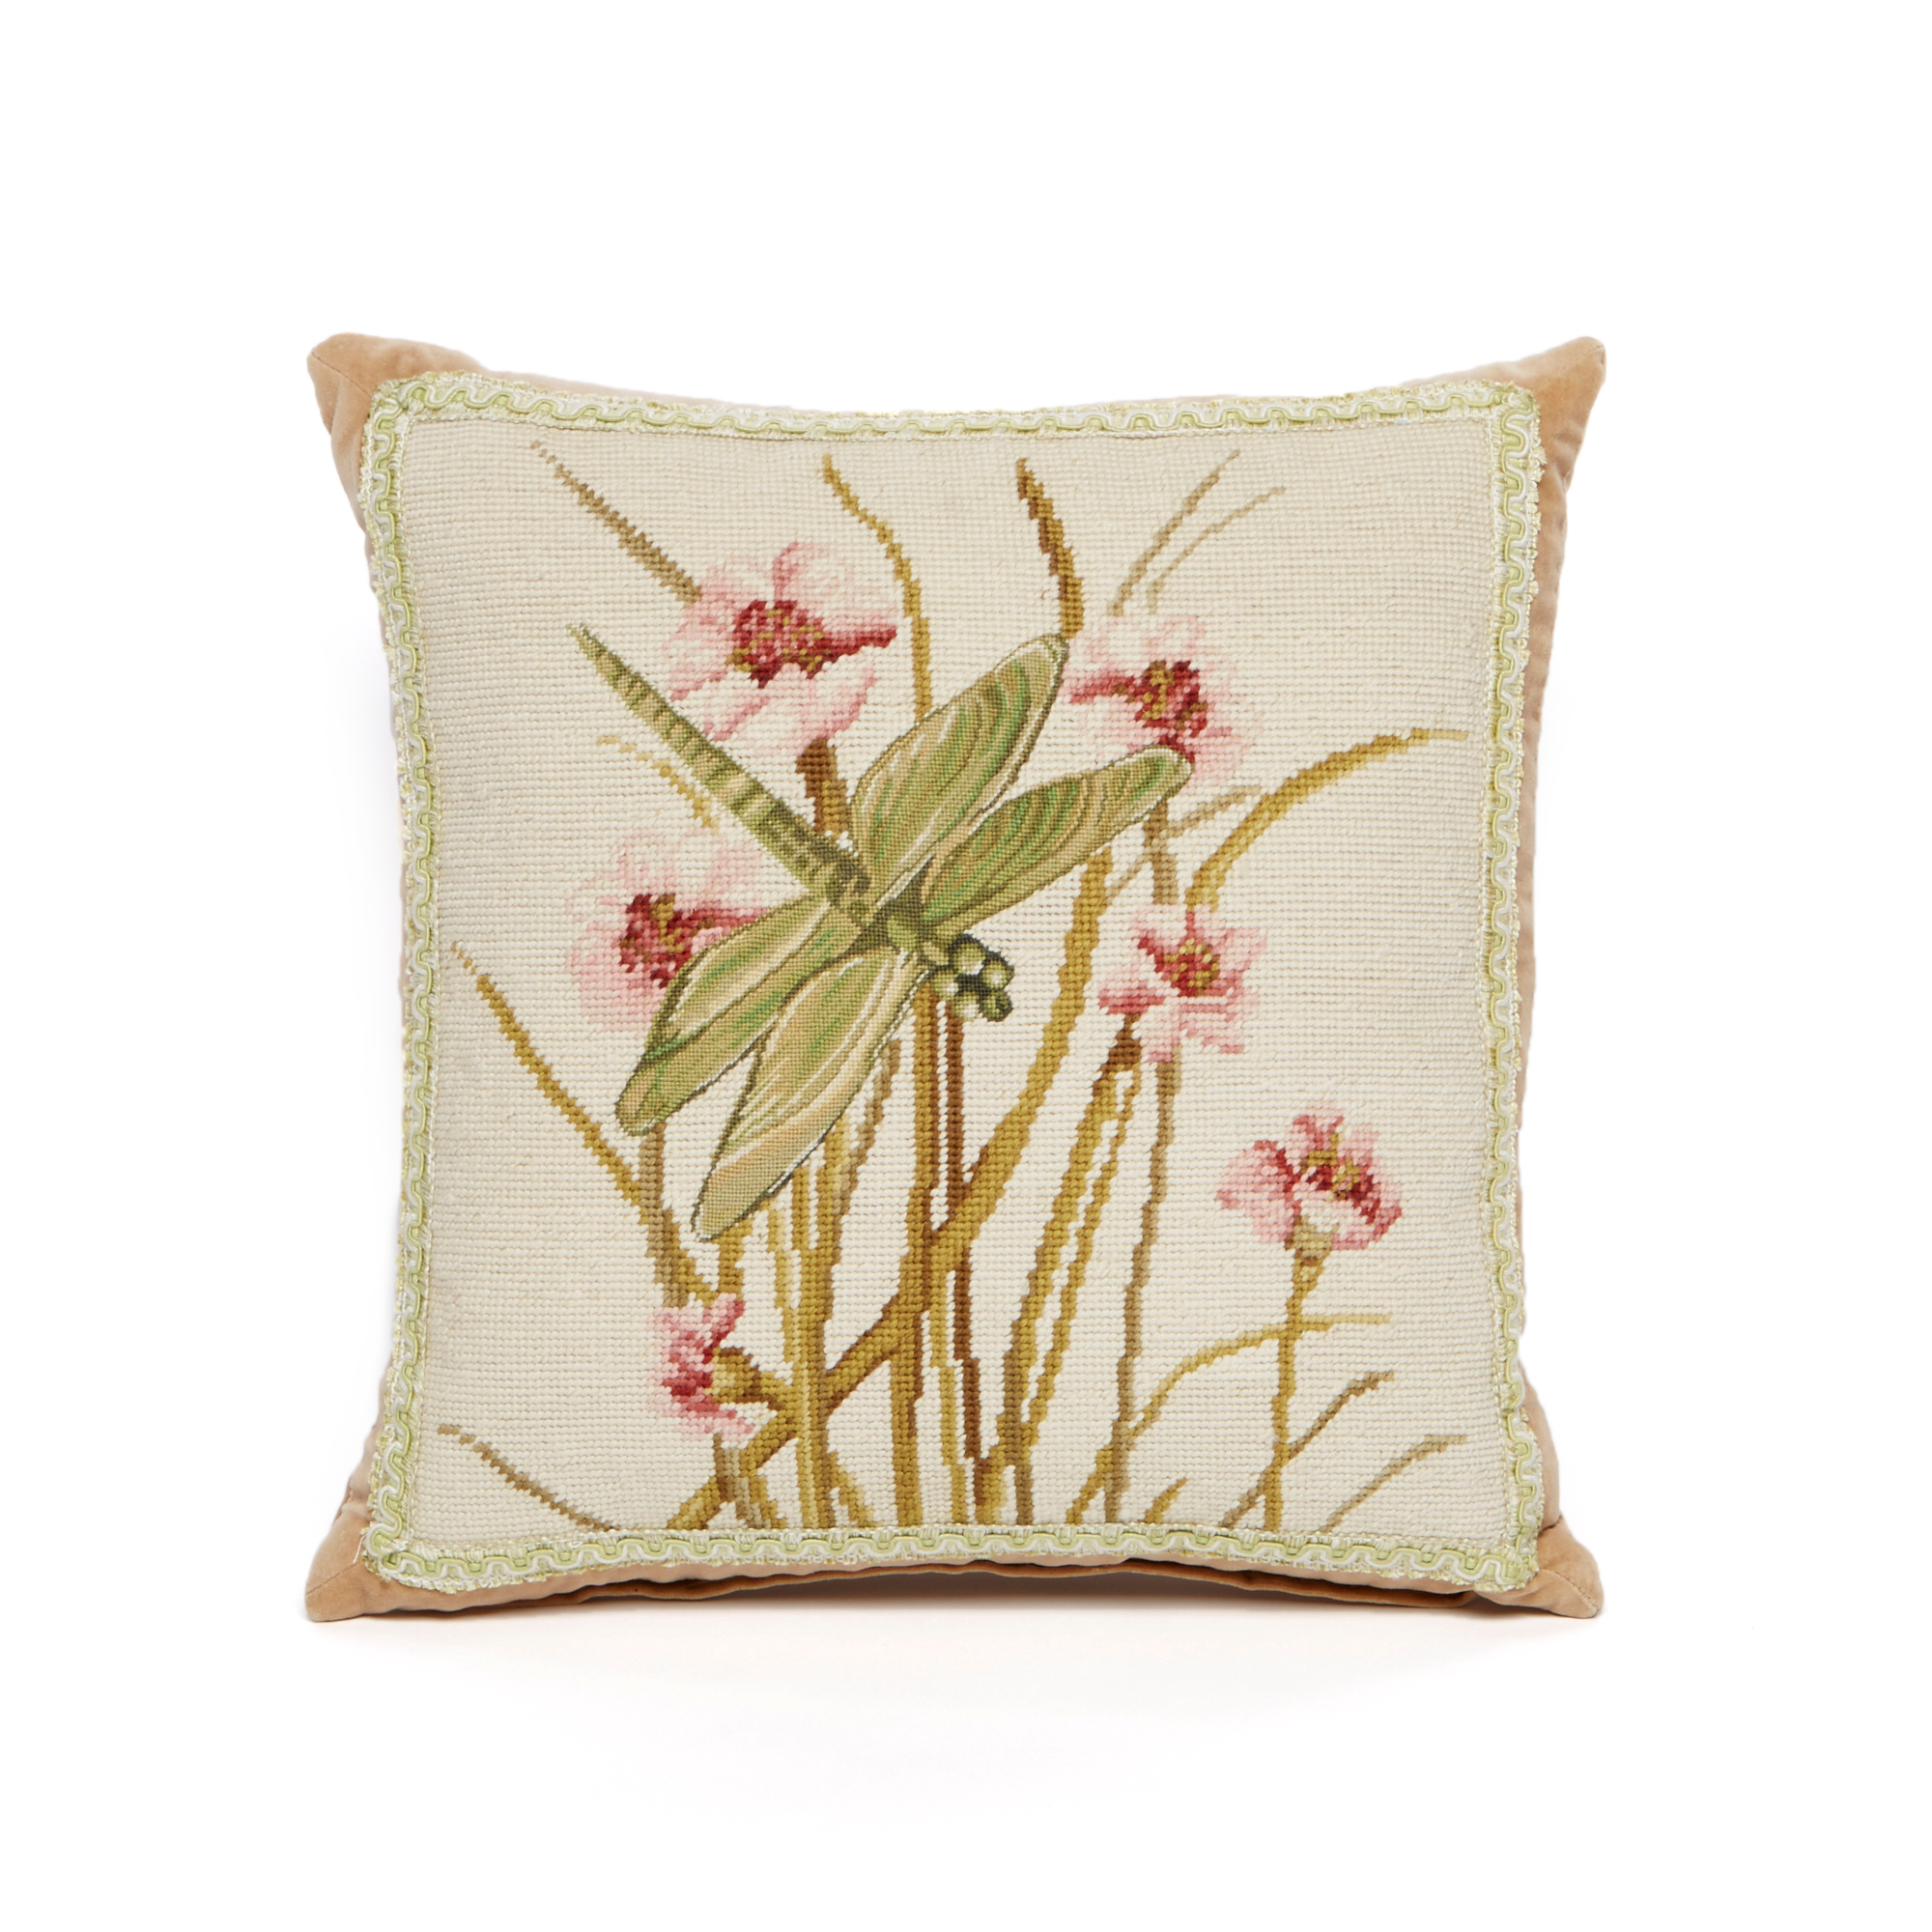 Garden Dragonfly Orchid Needlepoint Pillow